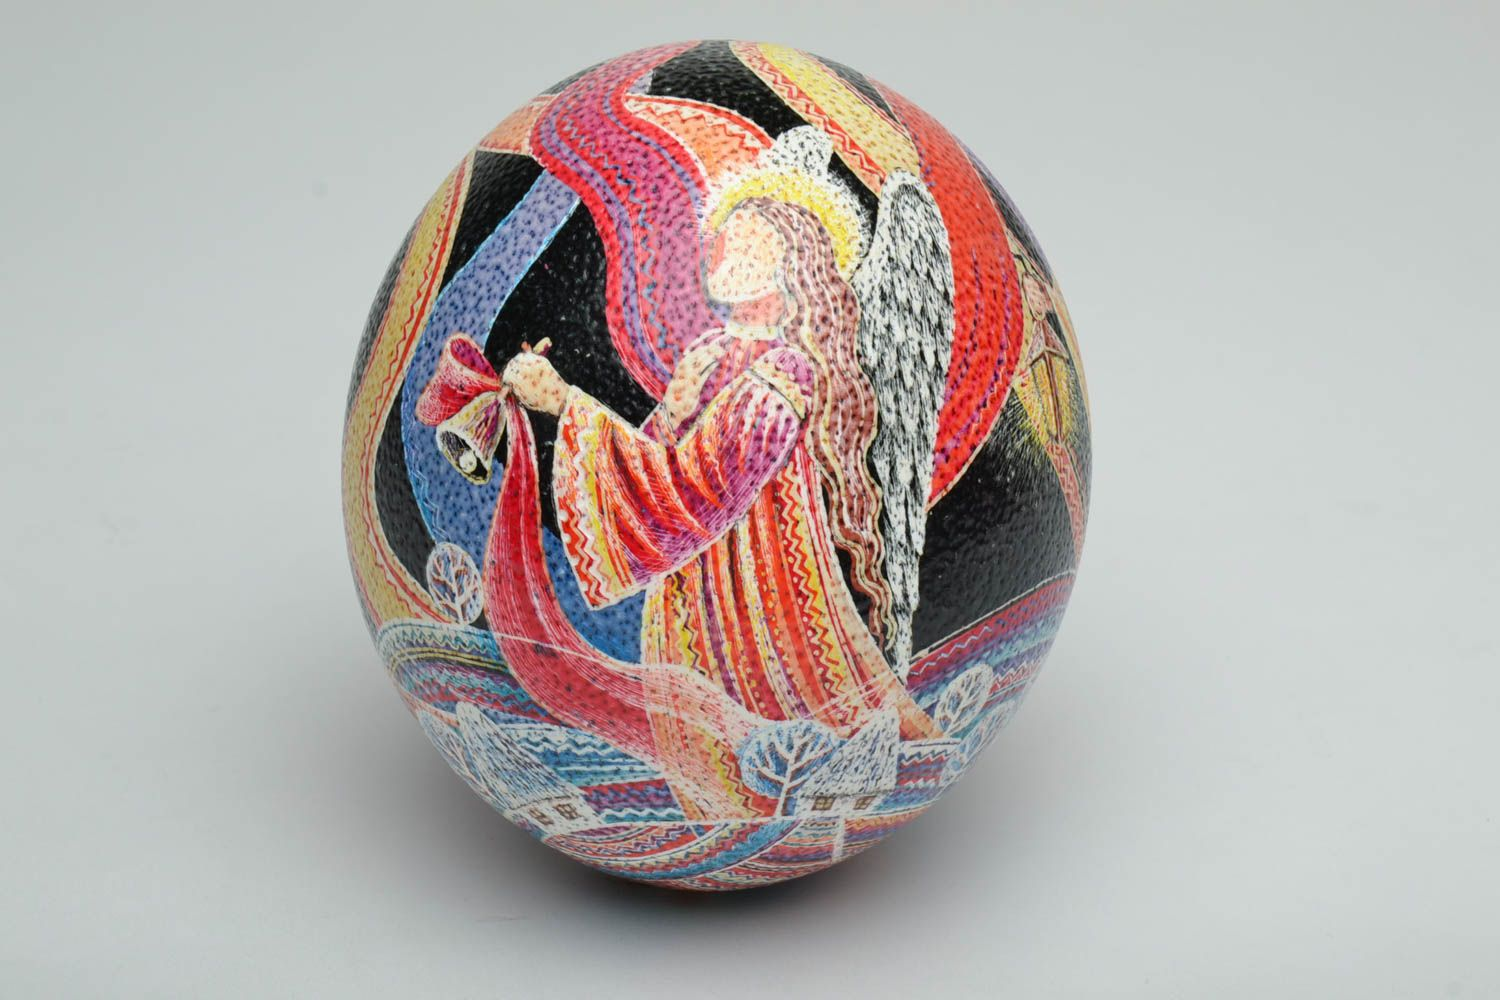 ostrich easter eggs Designer painted ostrich egg - MADEheart.com